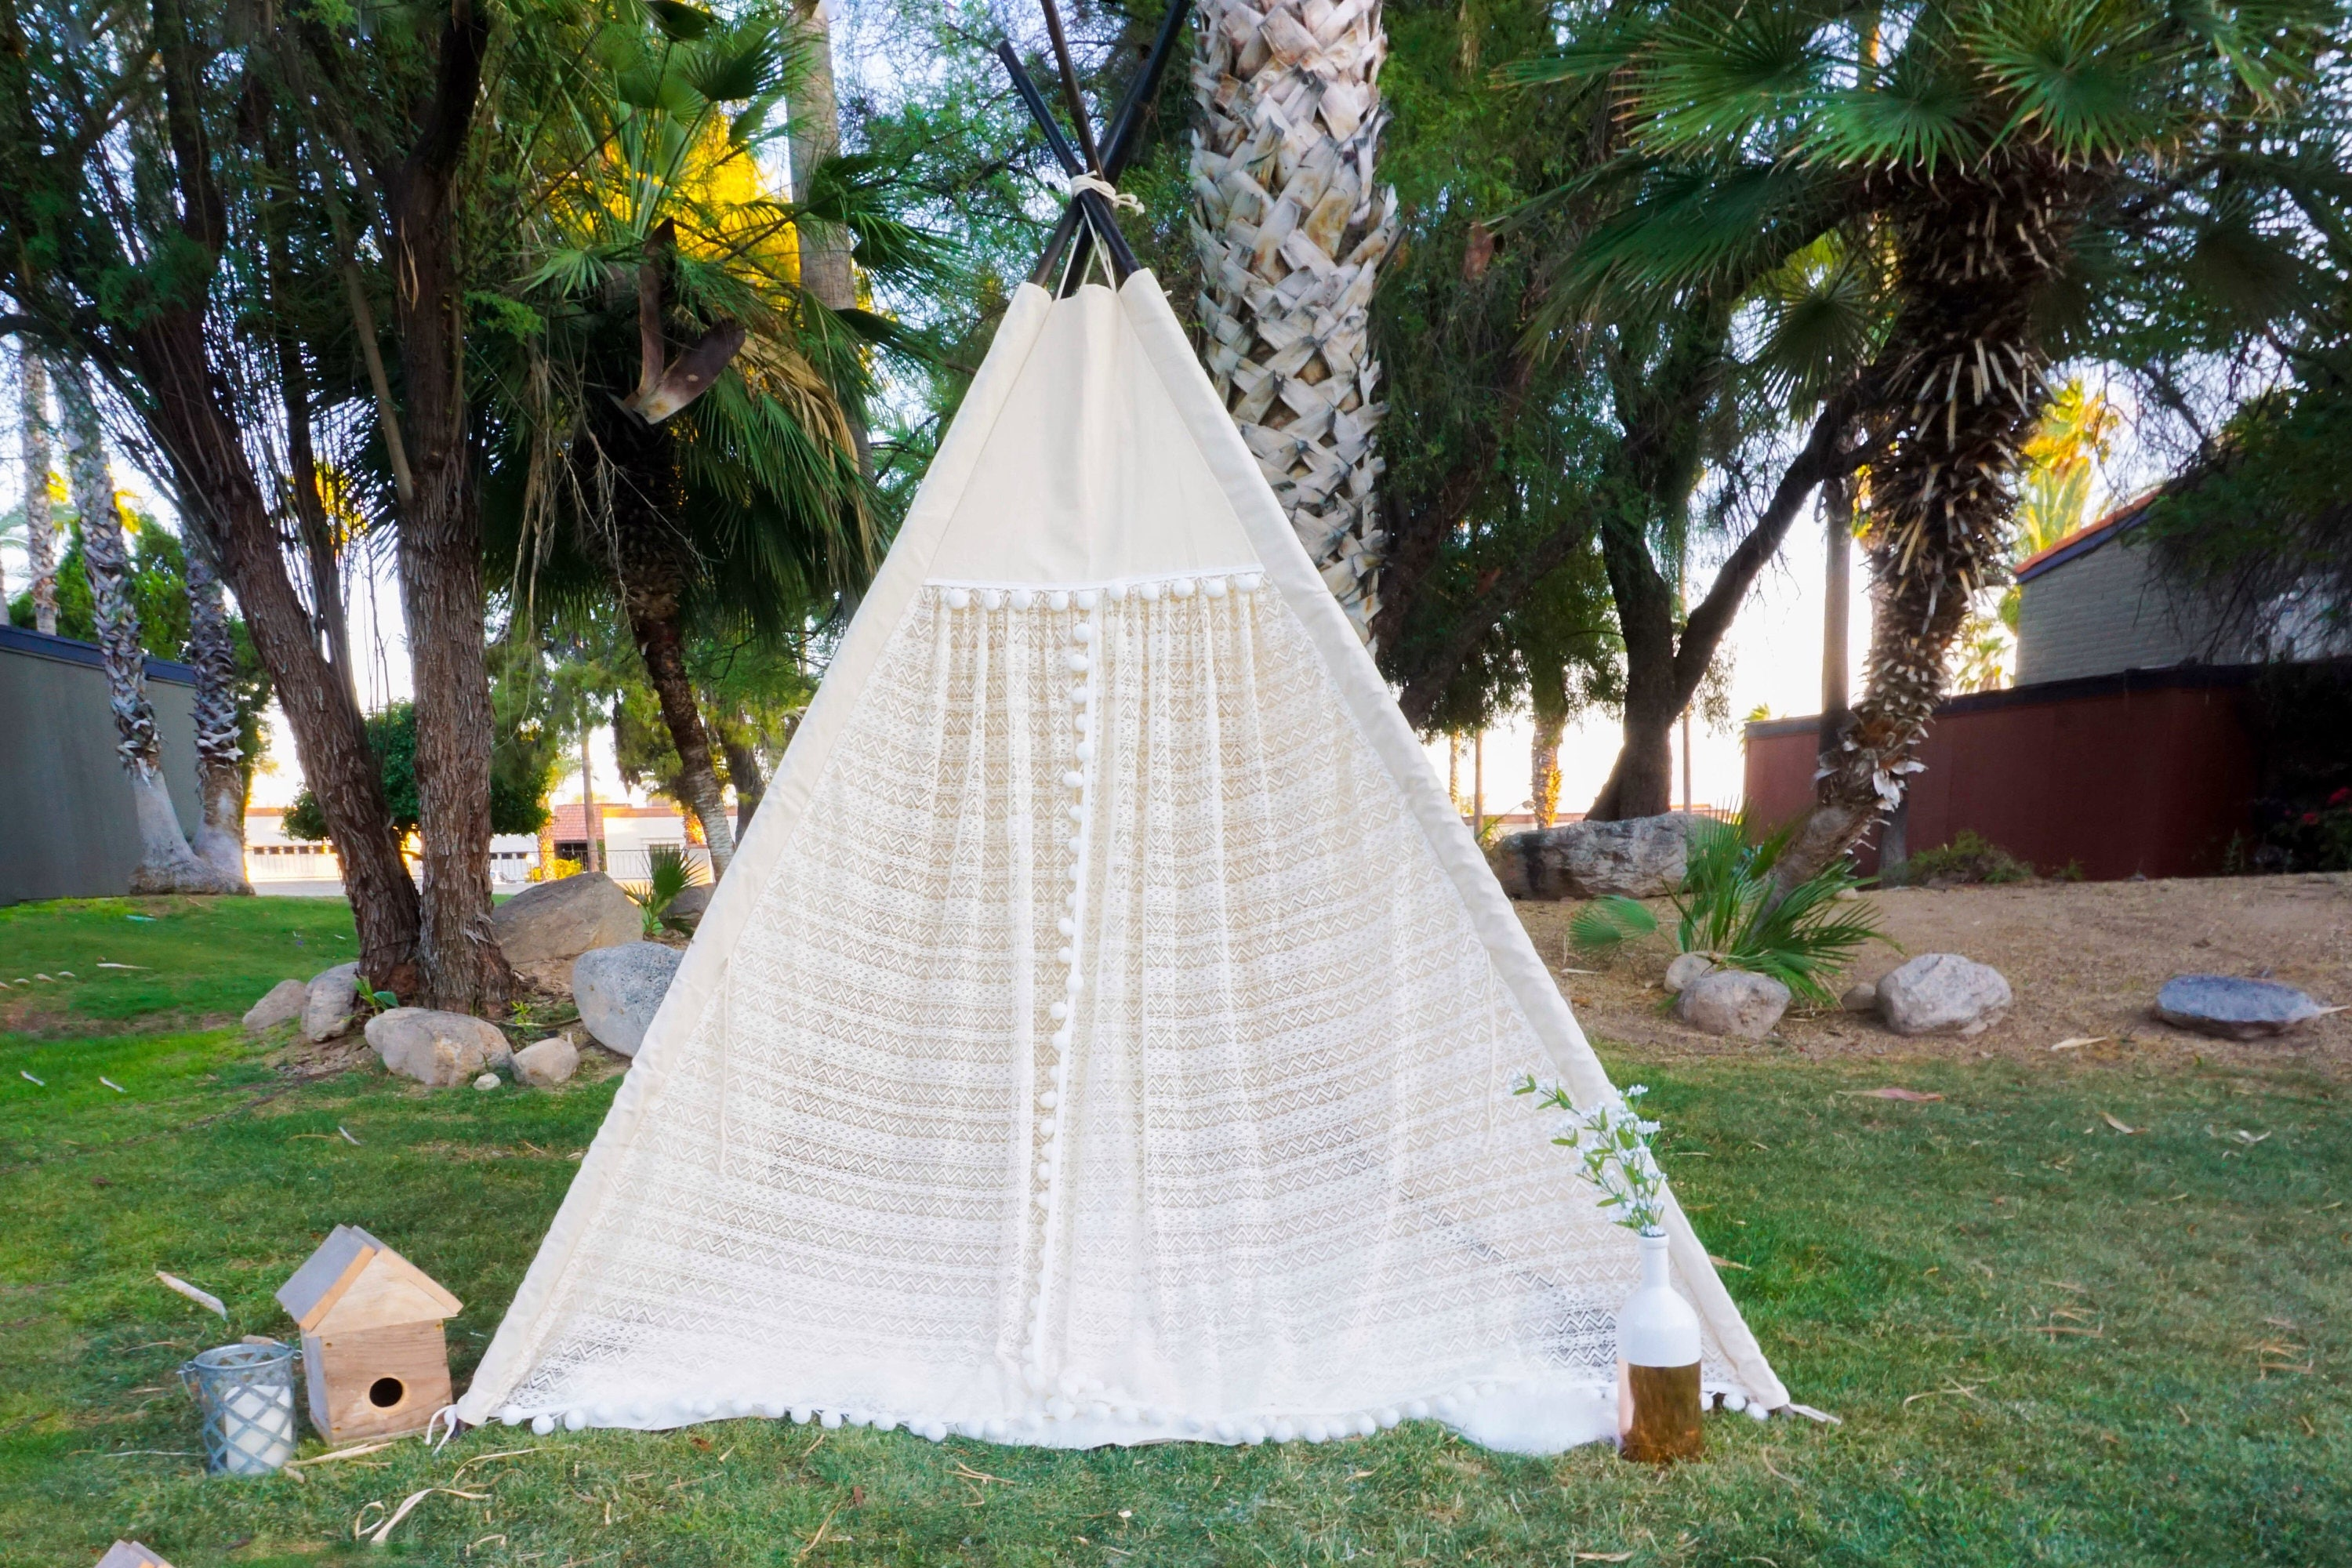 XL pocahontas lace teepee 8ft kids Teepee large tipi Play tent wigwam or playhouse with canvas and lace & XL pocahontas lace teepee 8ft kids Teepee large tipi Play tent ...